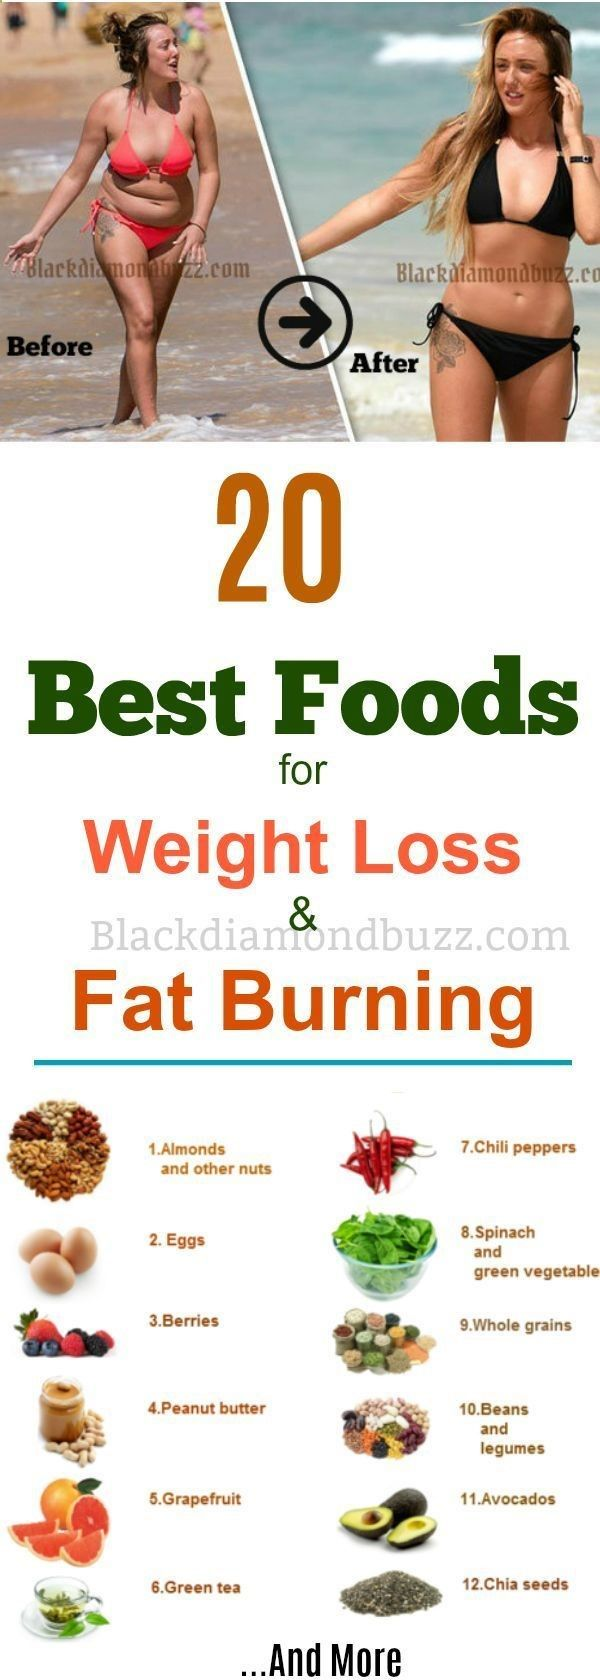 Weight loss plan comparisons image 1